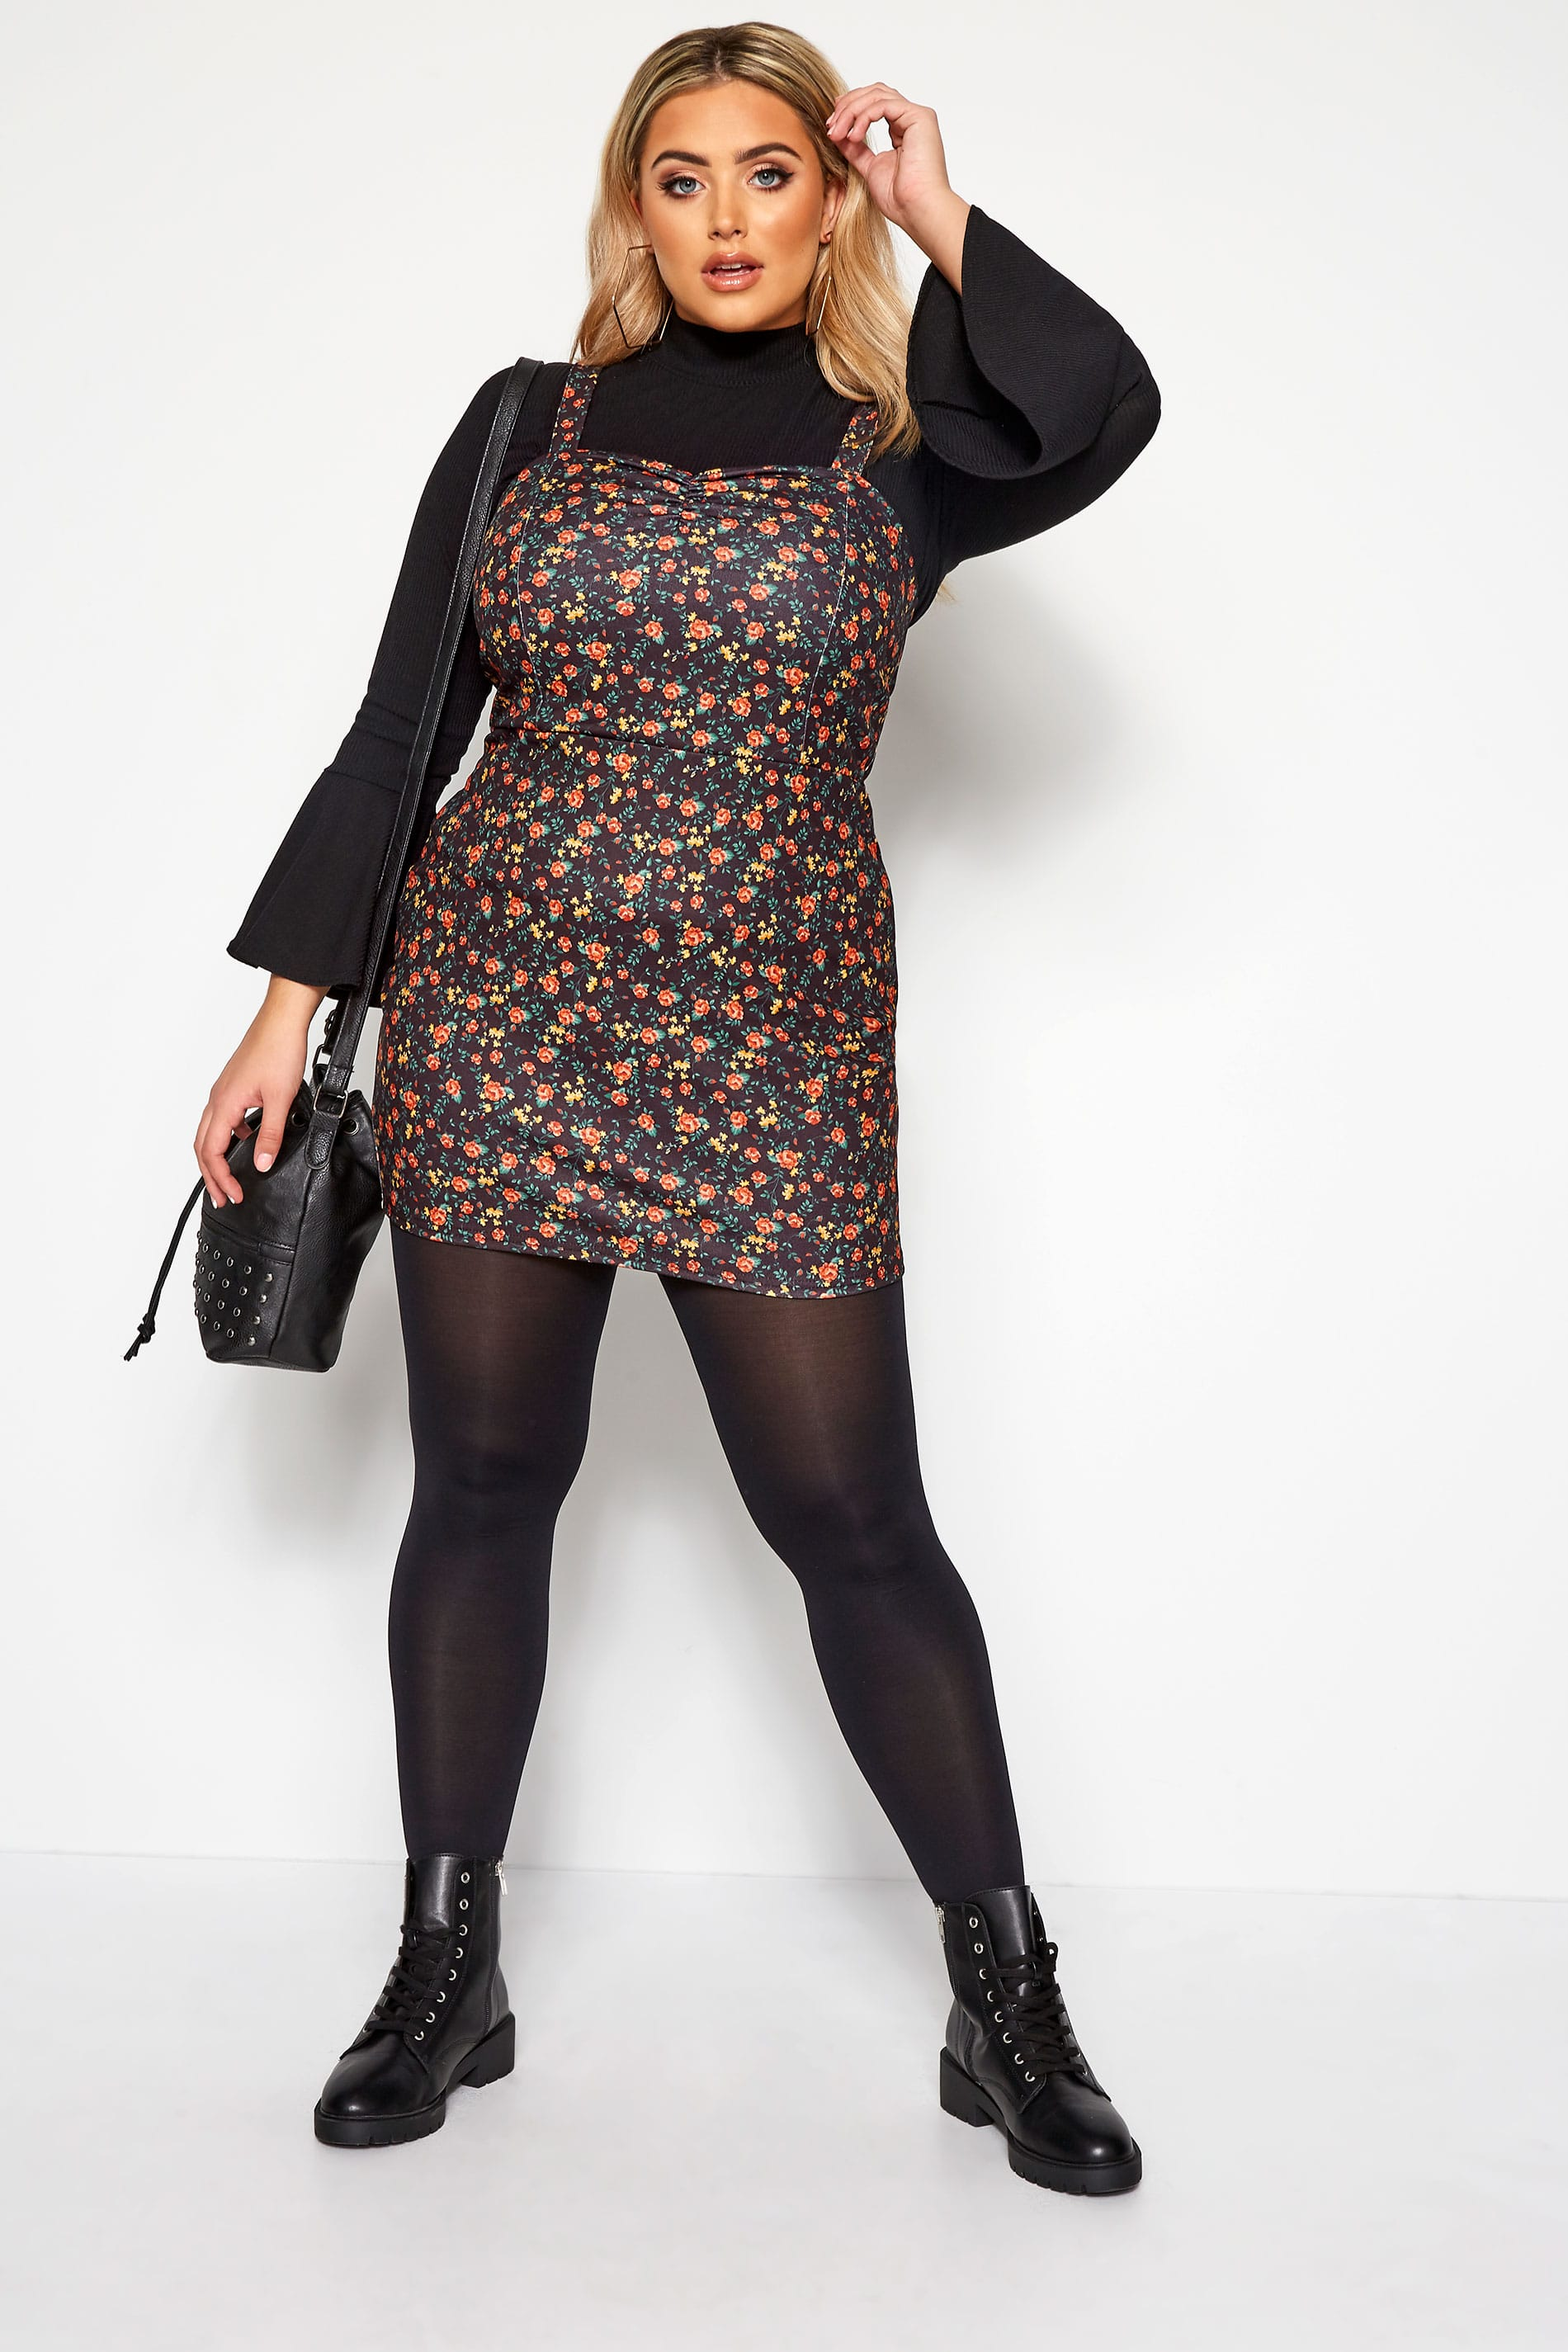 LIMITED COLLECTION Black Floral Pinafore Dress